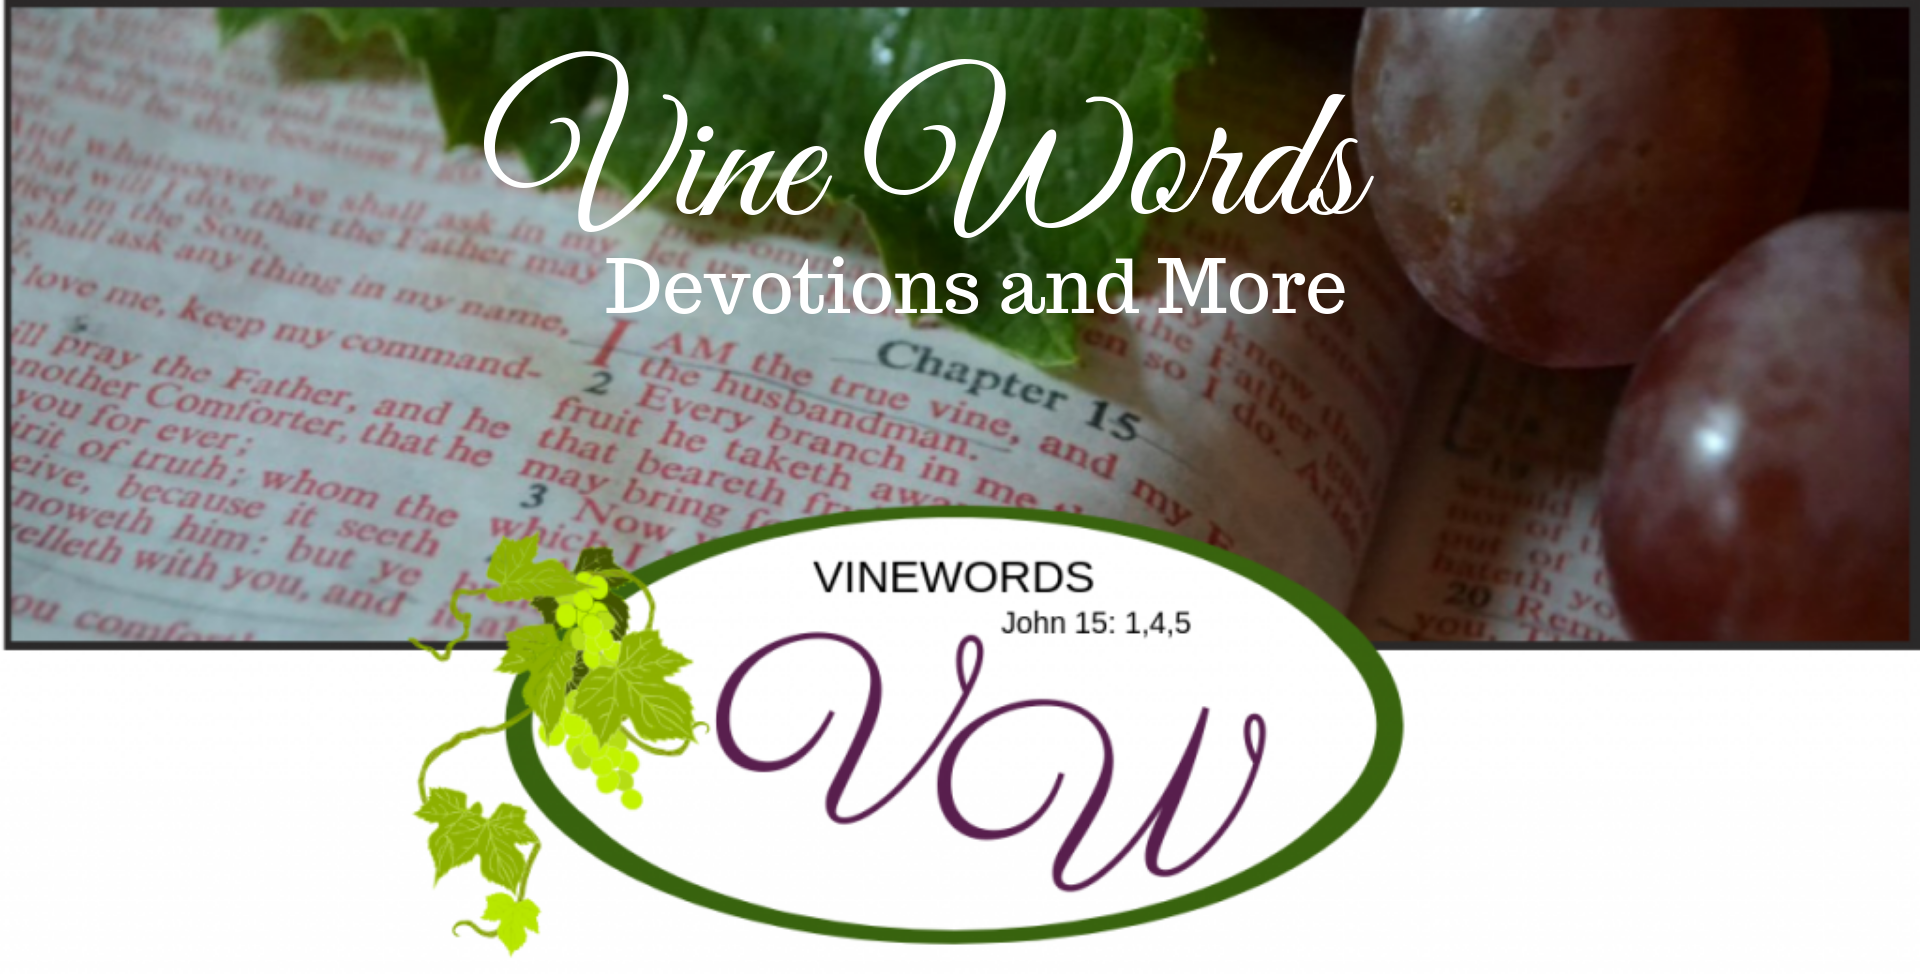 VineWords Devotions and More